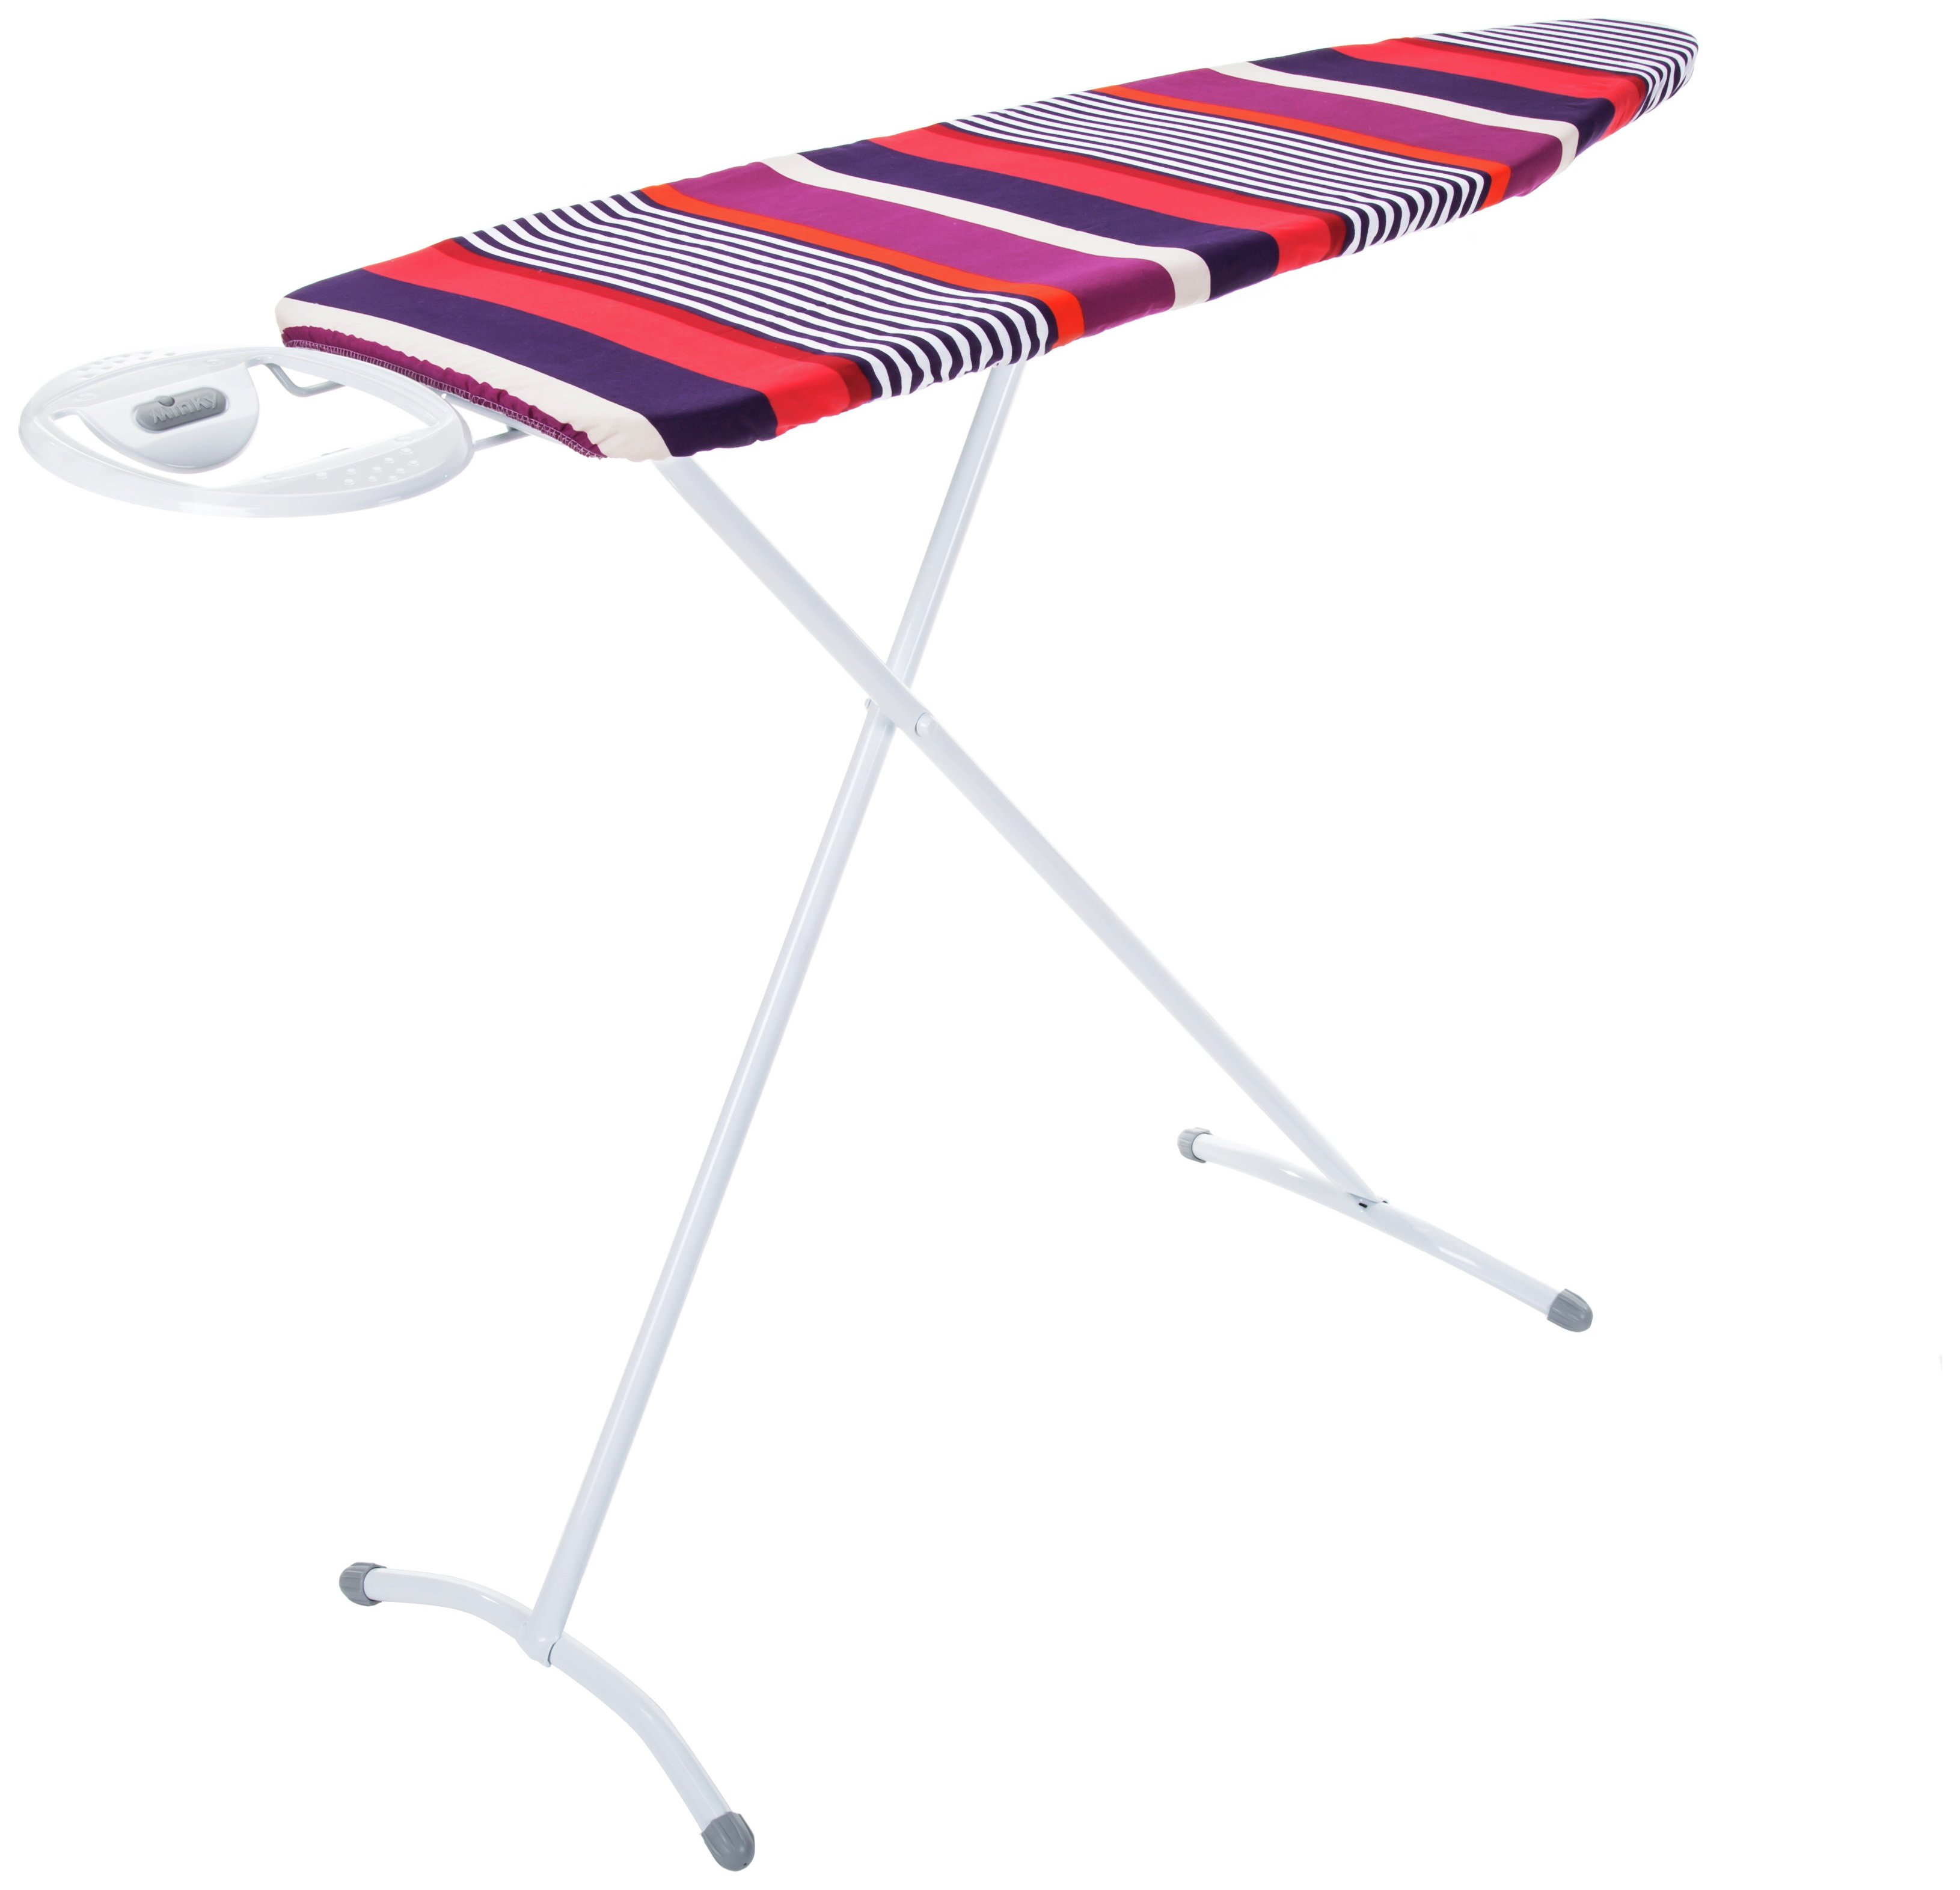 ironing boards and covers page 4 argos price tracker. Black Bedroom Furniture Sets. Home Design Ideas